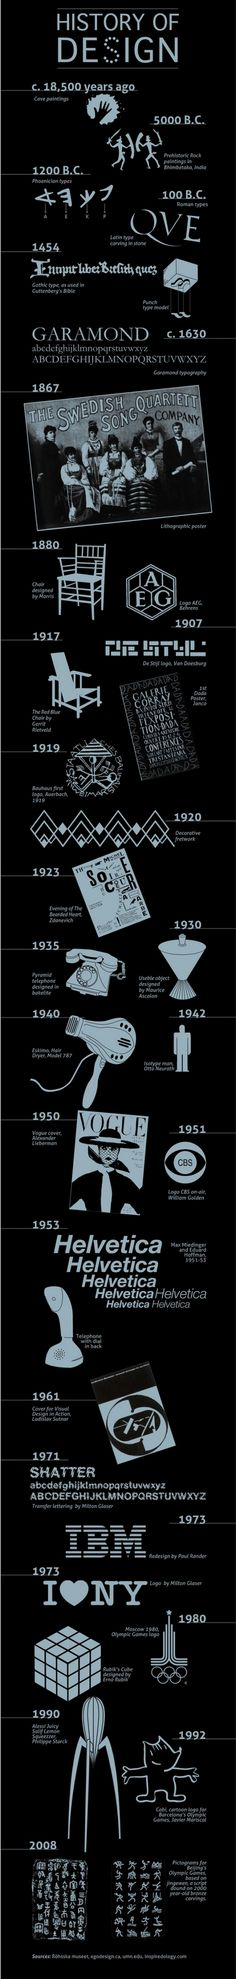 The History of Design.